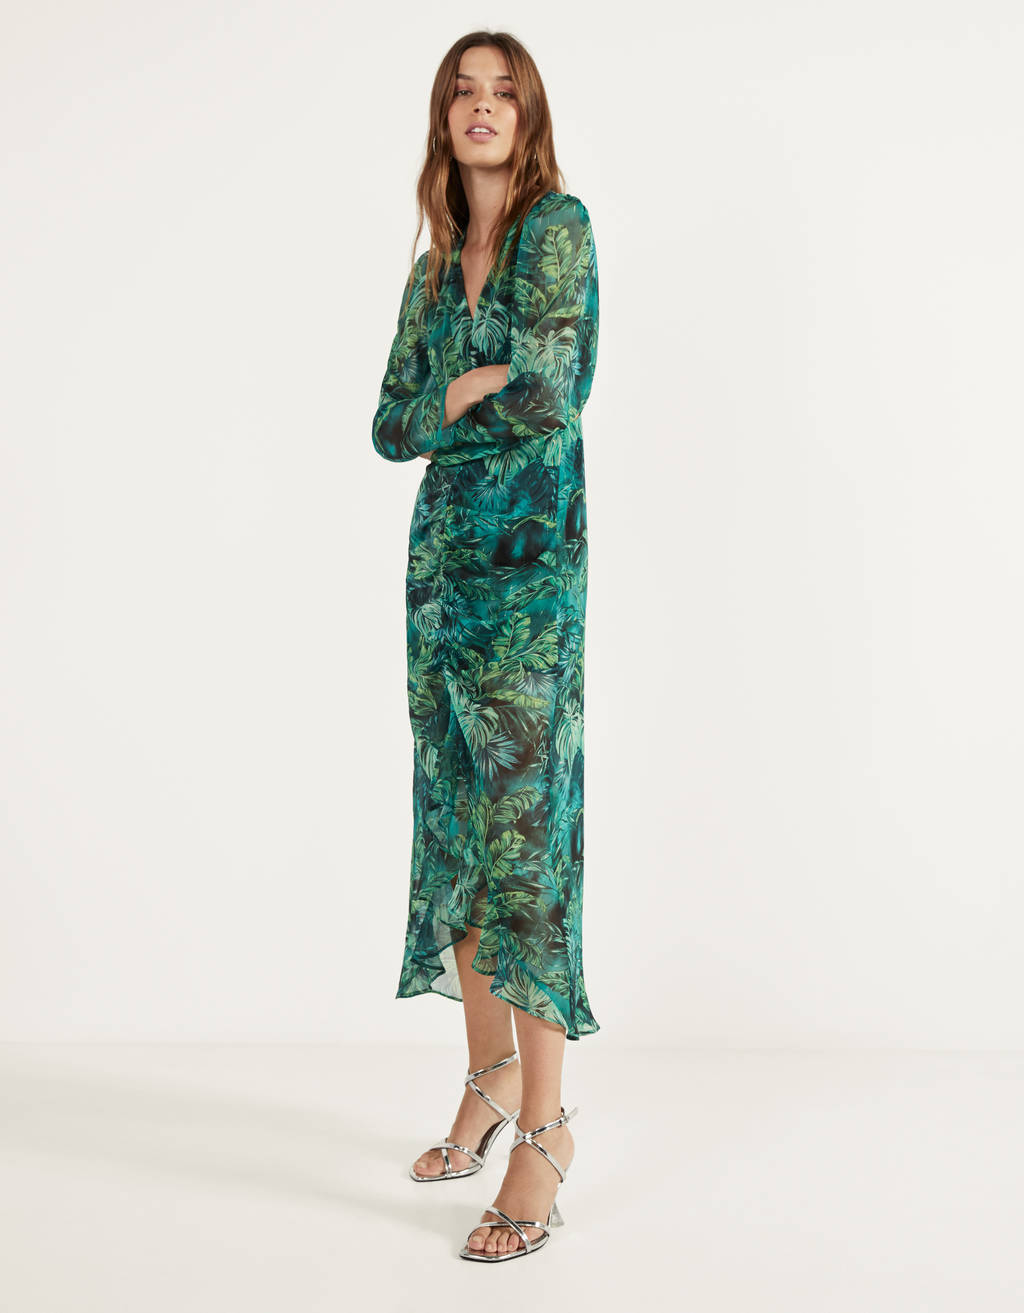 Tropical print dress with slits